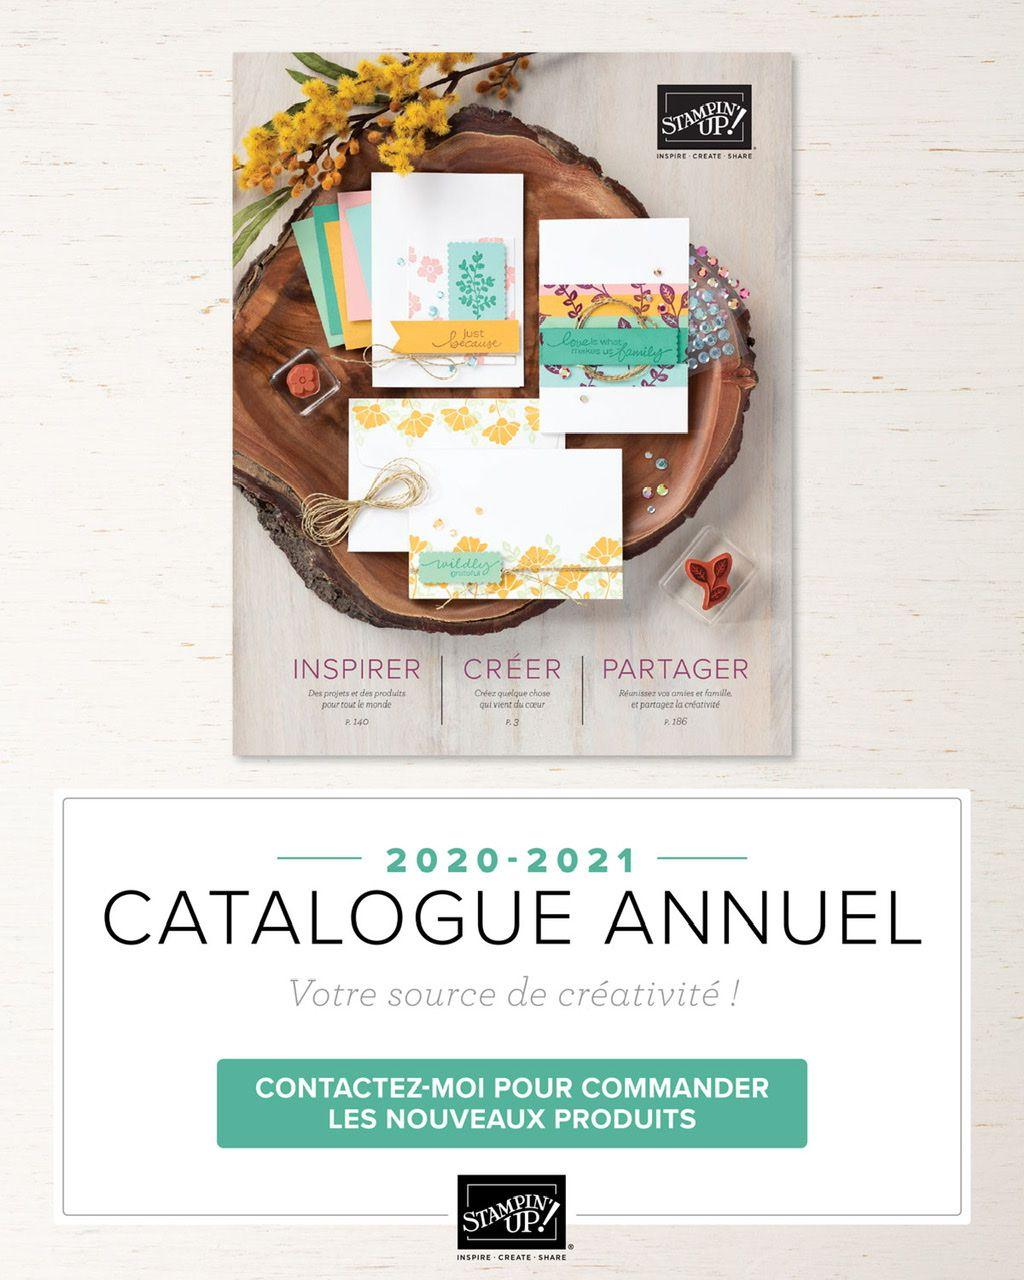 Catalogue annuel Stampin'Up! 2020/2021